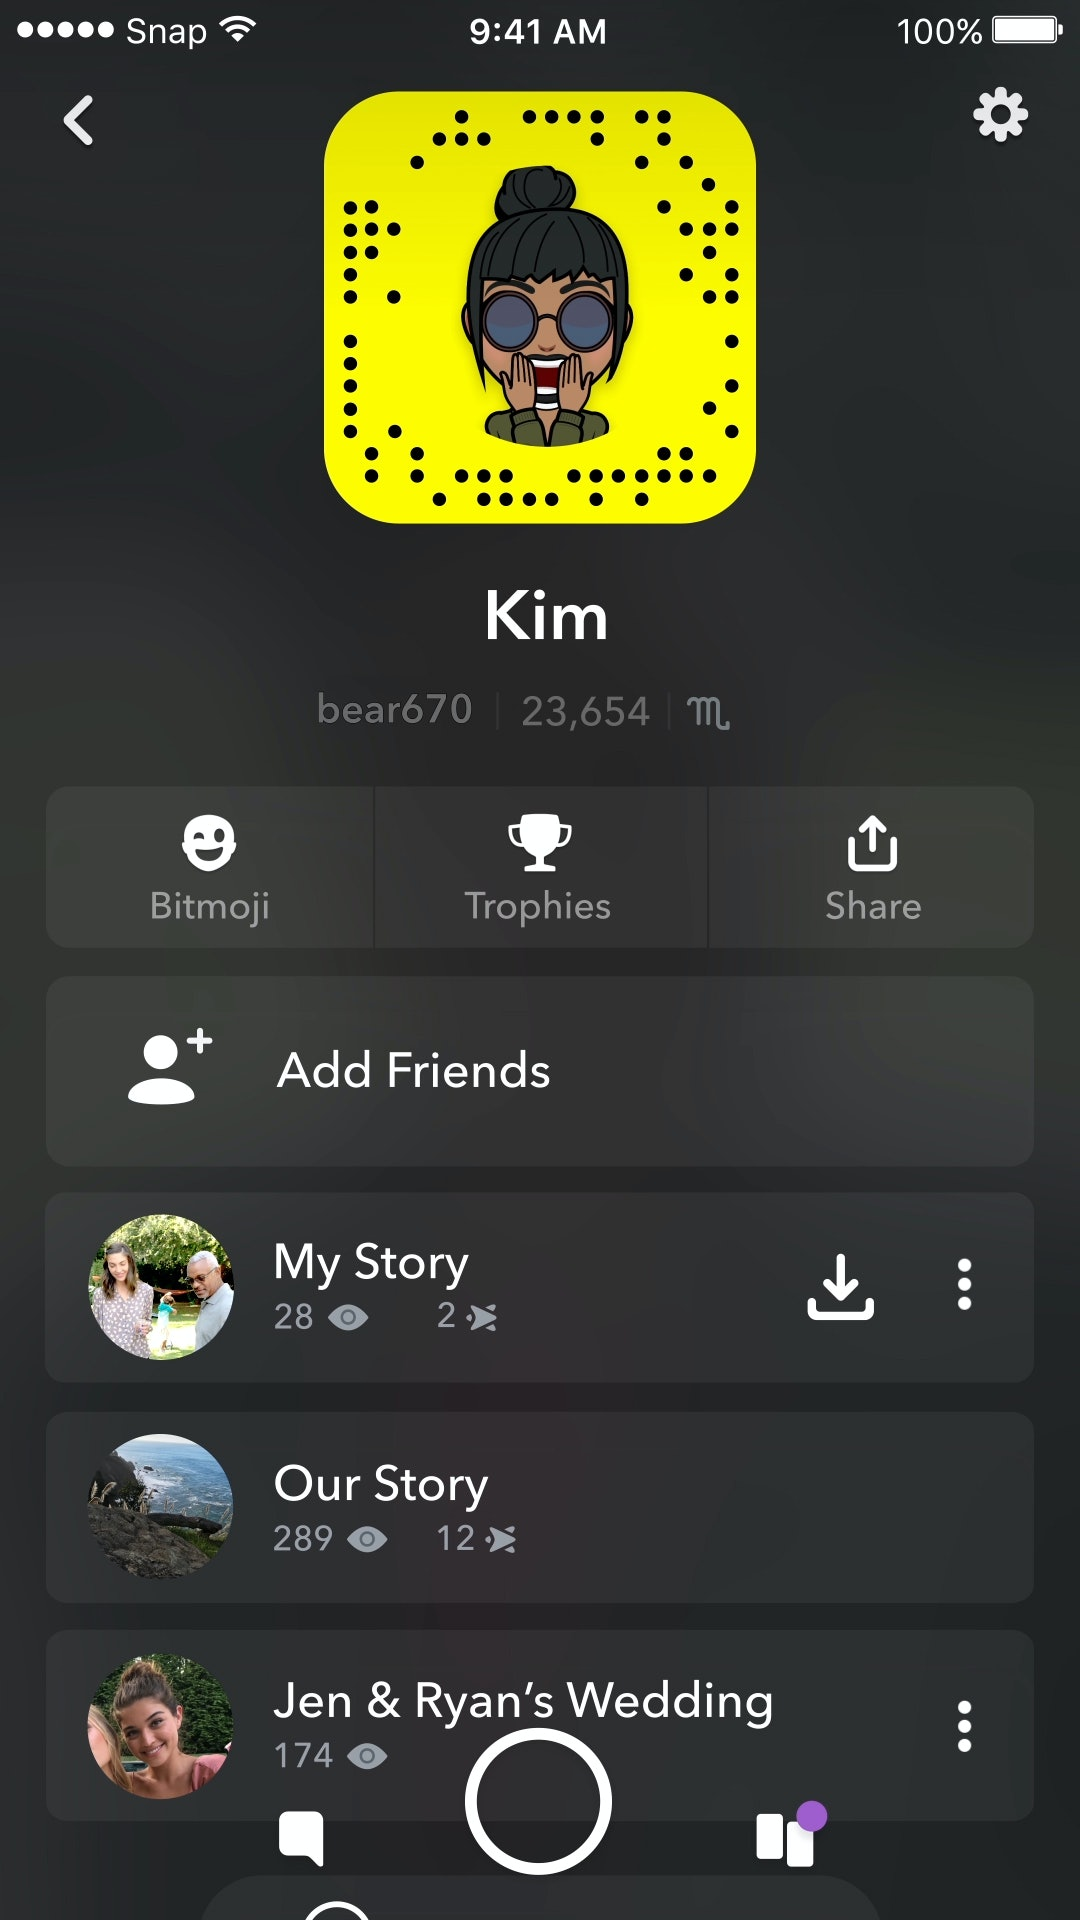 How To Use The New Snapchat Update Now That The App Has Been